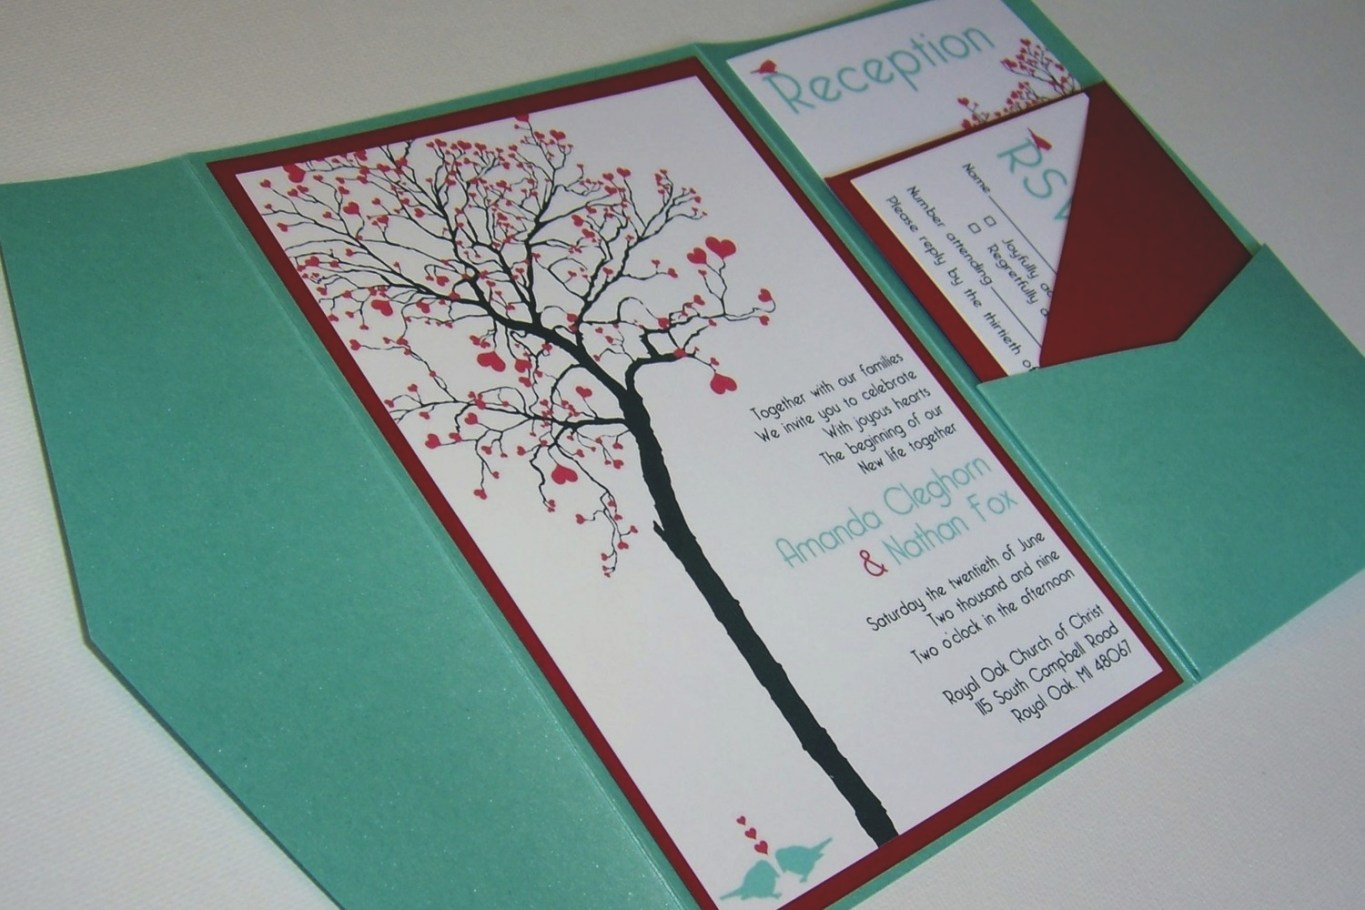 Discounted Wedding Invitations 2018 On A Budget Eventinvitationtemplates: Wedding Invitations On A Budget At Reisefeber.org